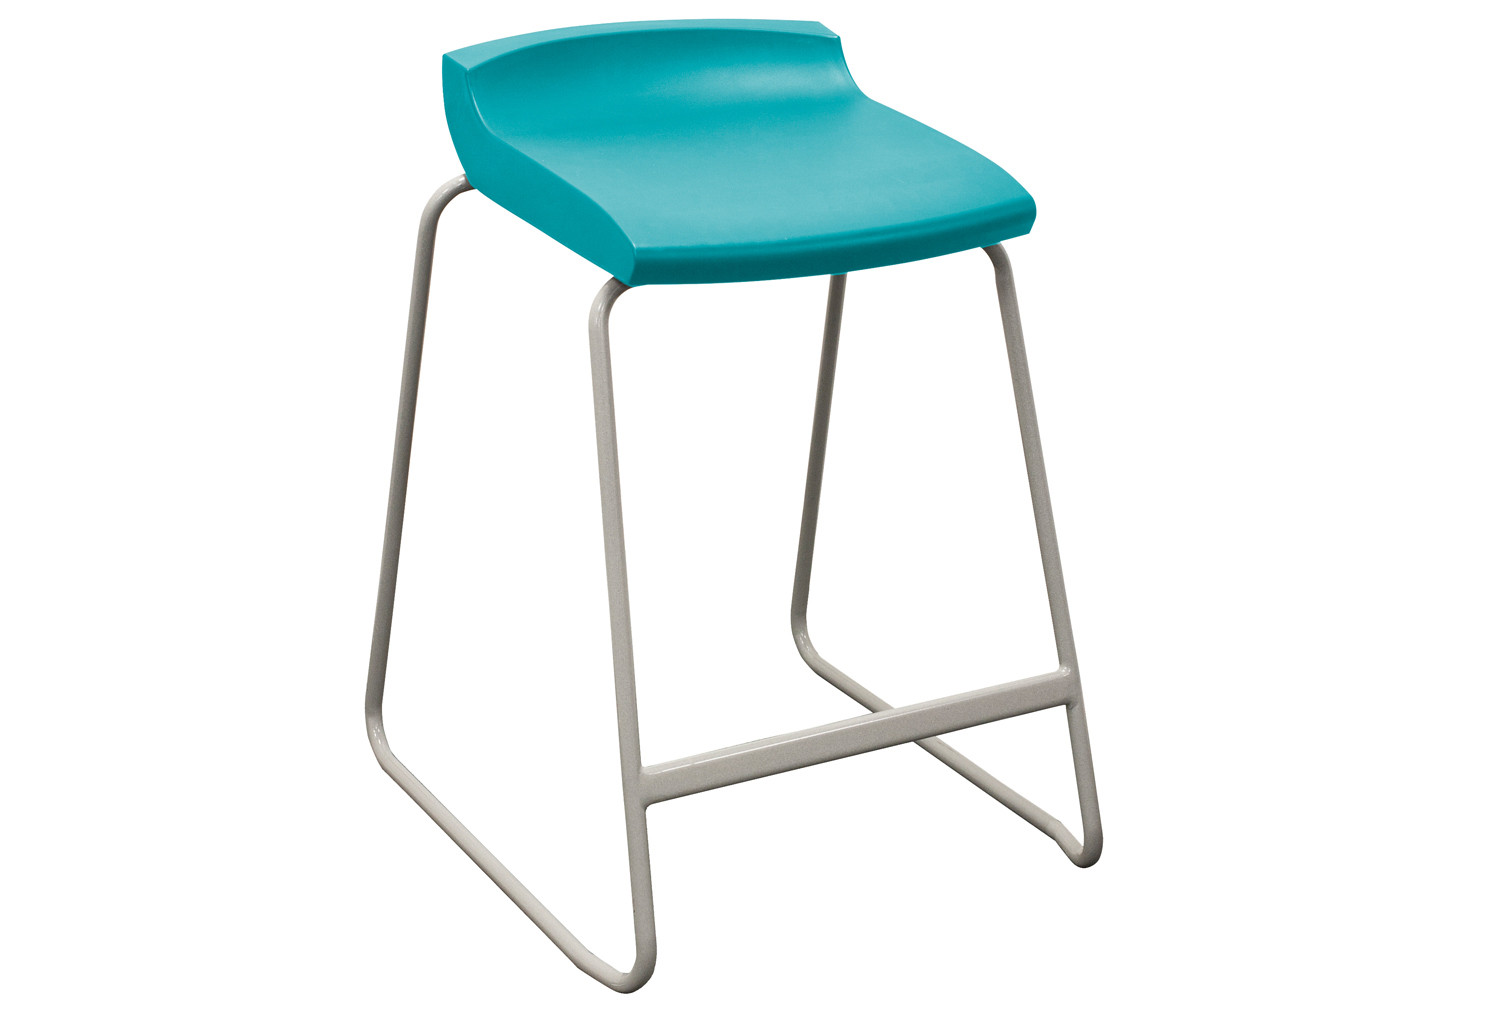 10 X Green Classroom Stool. Find Loads More Colours, Materials & Styles Online - Buy Office Furniture Online